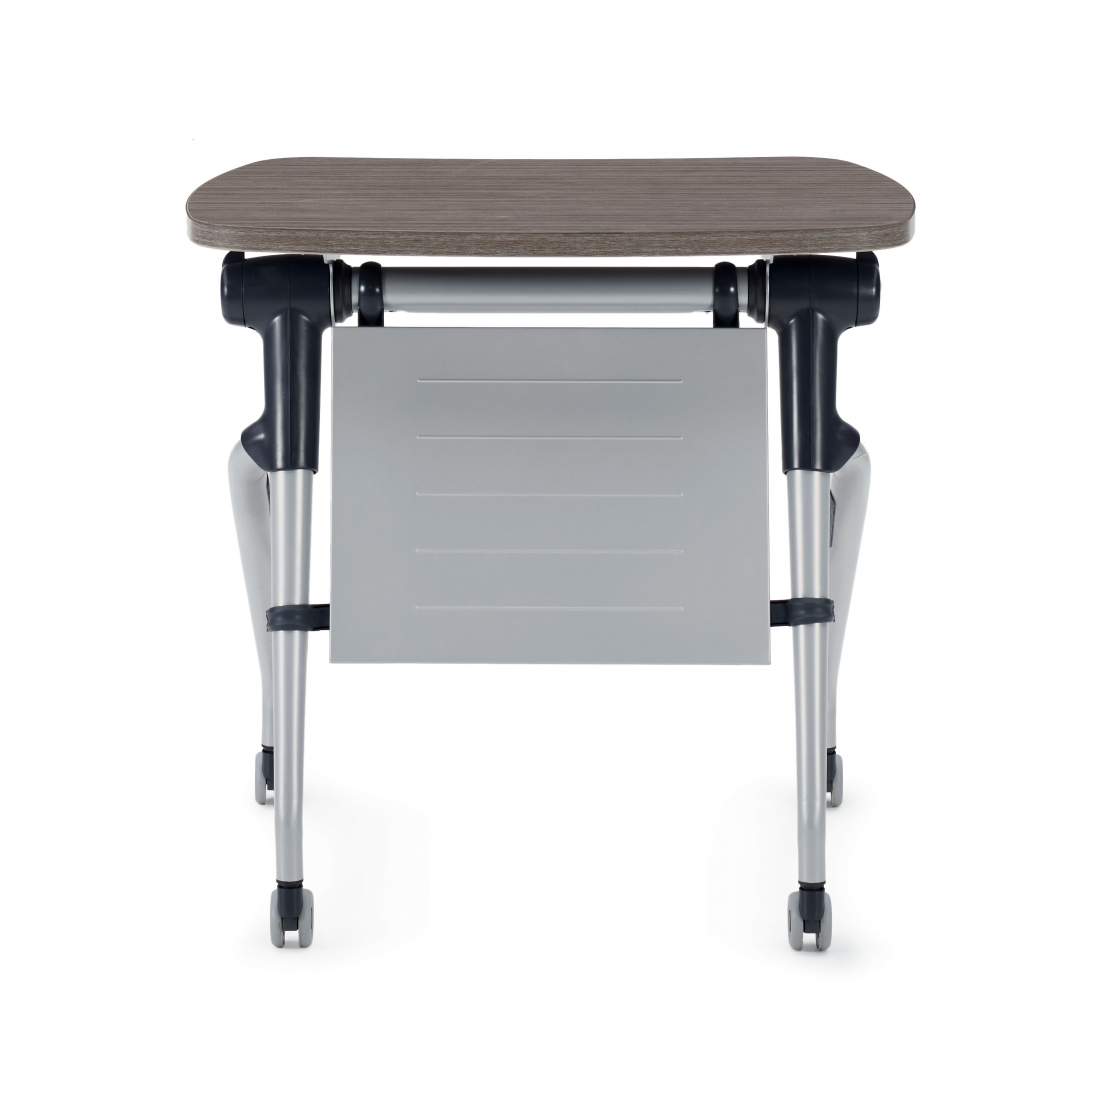 zook table with modesty